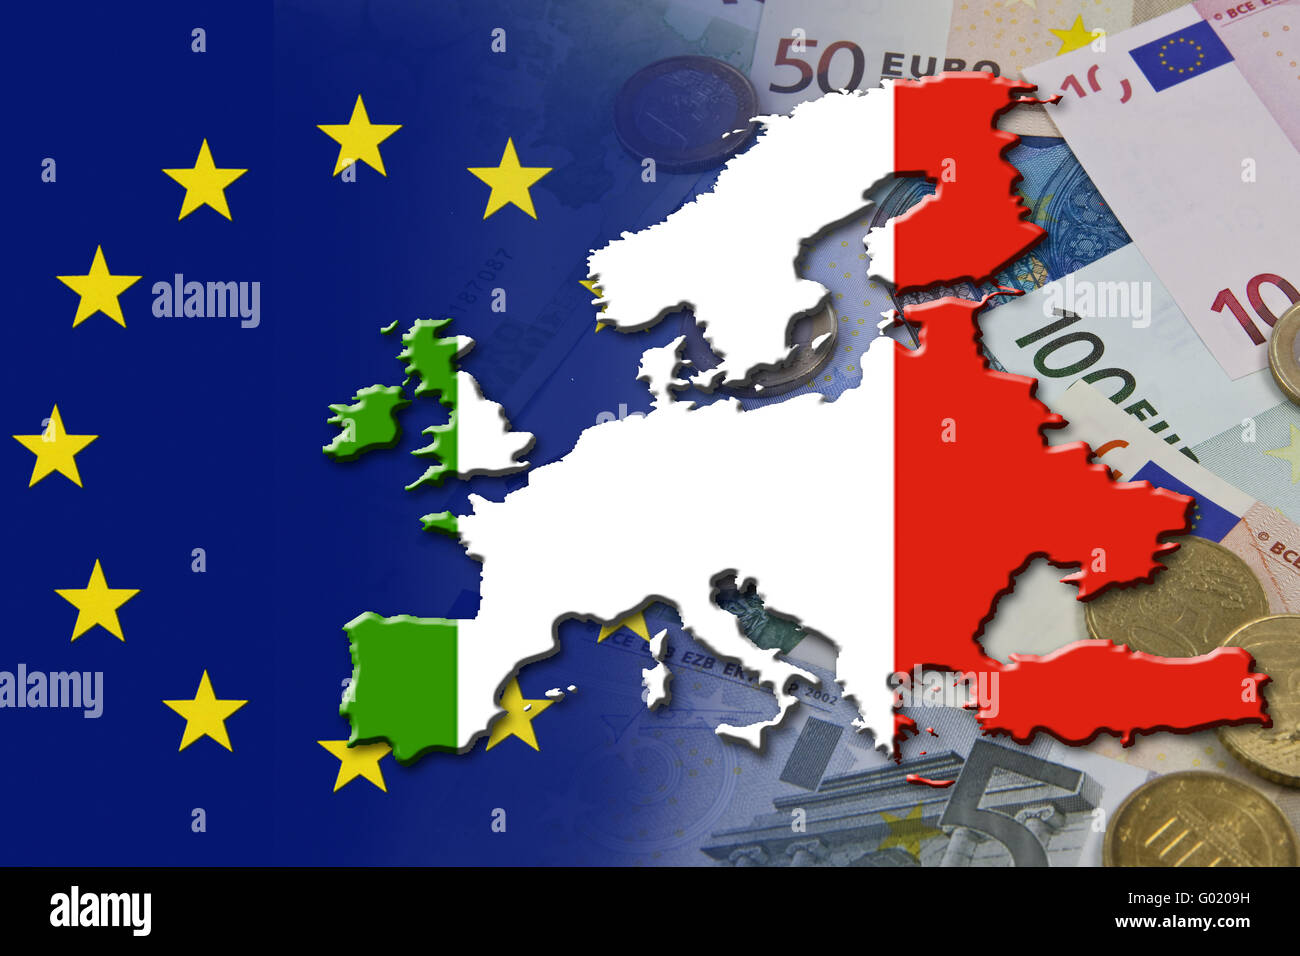 Financial and economic crisis in the euro area in Europe of the country Italy - Stock Image